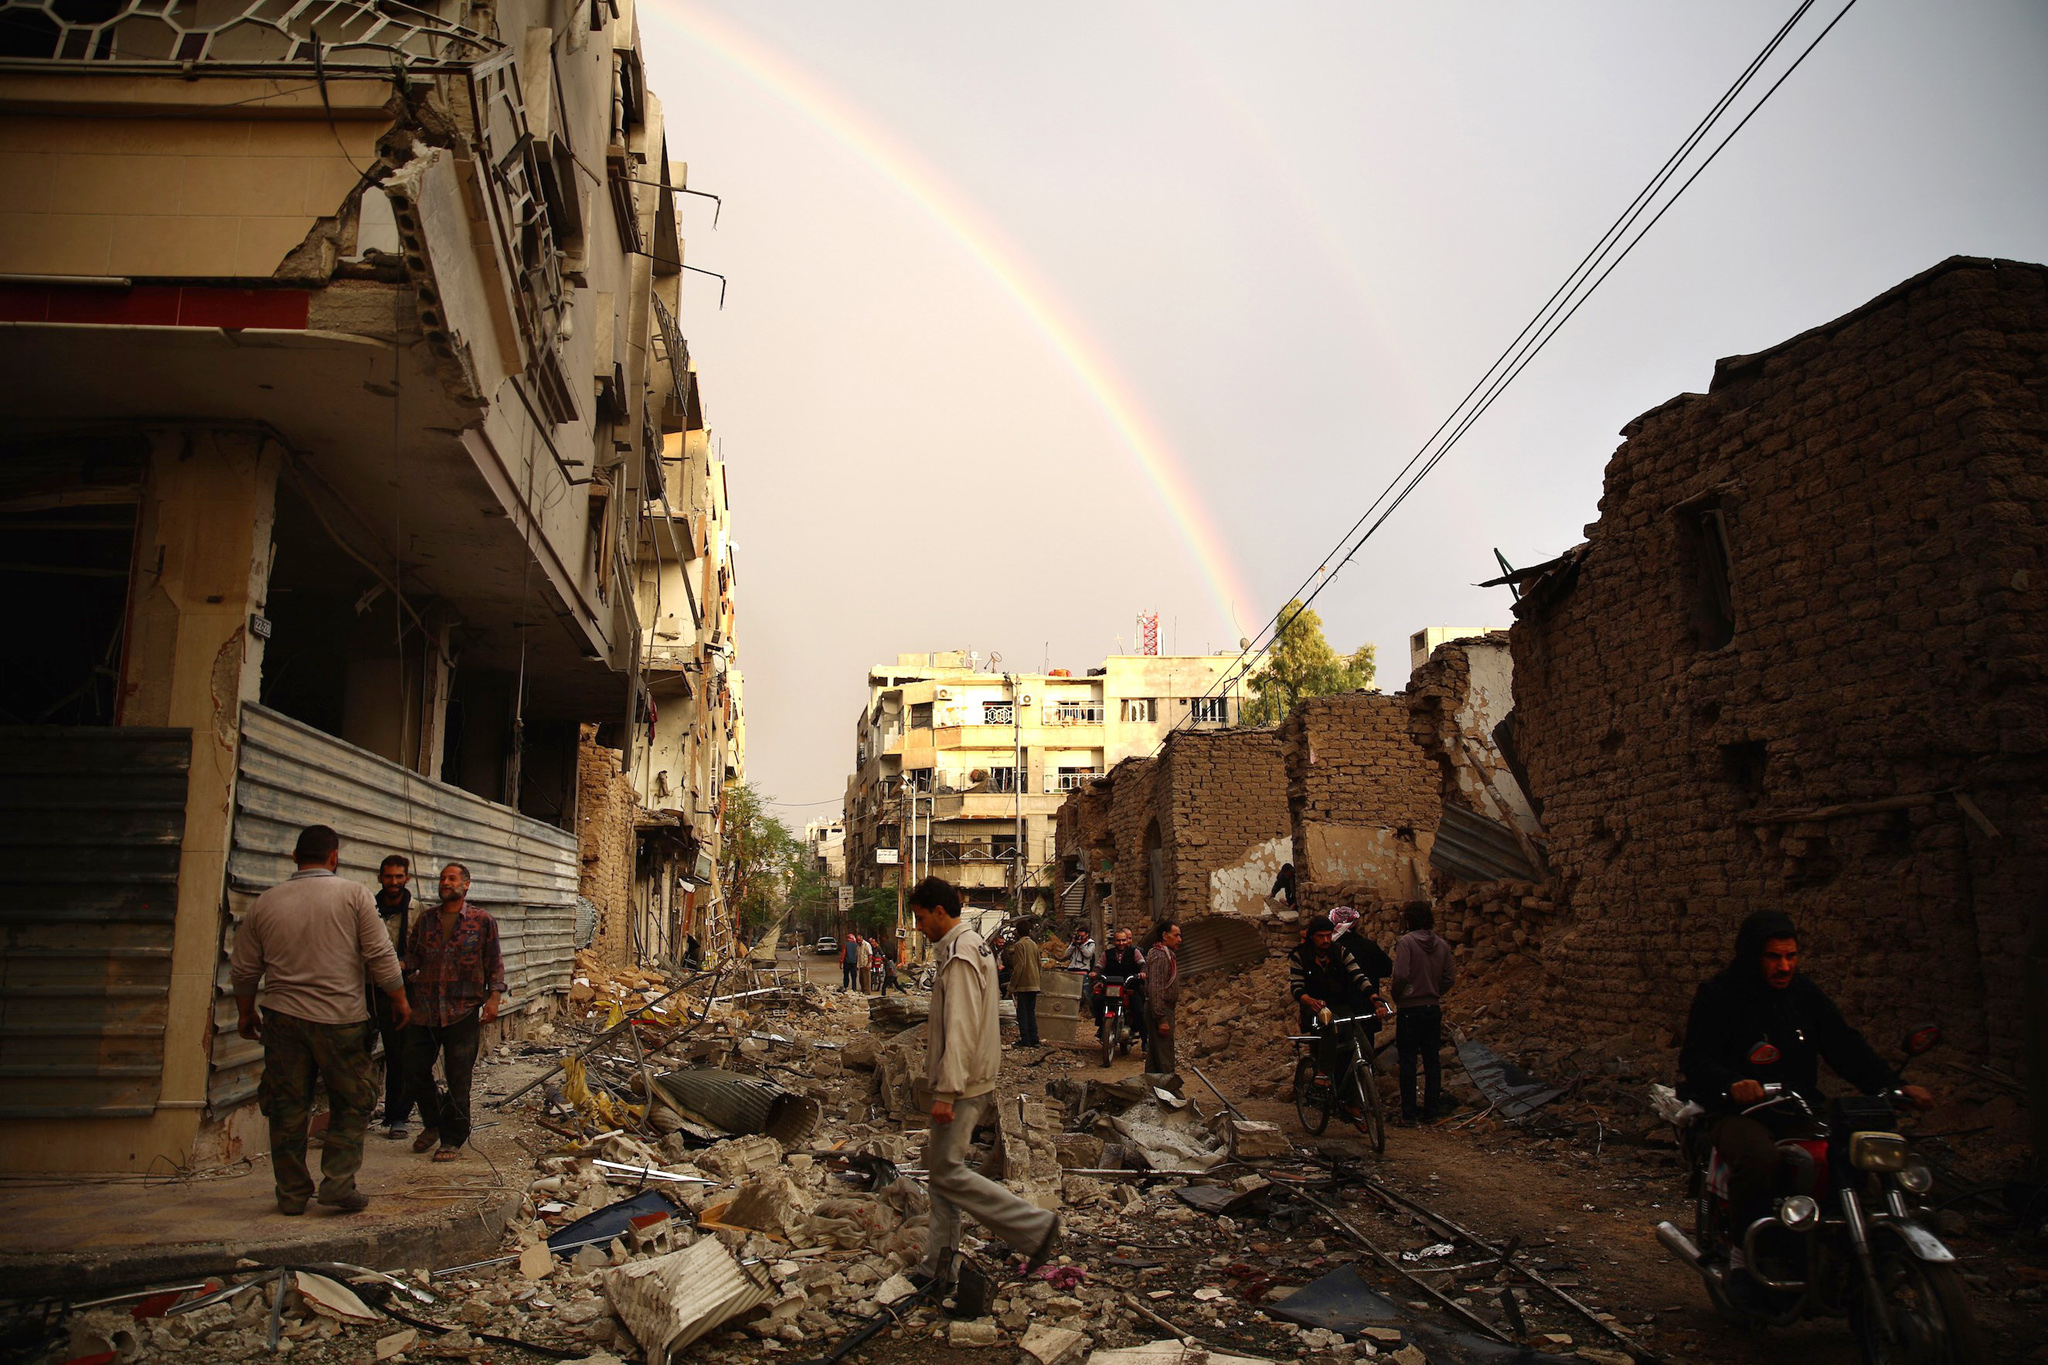 Syrians walk through debris following a reported air strike by Syrian government forces in the rebel-held town of Douma, east of the capital Damascus, on October 29, 2015. Syrian government air strikes on a market and a hospital killed several civilians in Douma, the Syrian Observatory for Human Rights monitor and activists said. Dozens more were wounded, several seriously, and the toll is likely to rise. AFP PHOTO / ABD DOUMANY (Photo credit should read ABD DOUMANY/AFP/Getty Images)